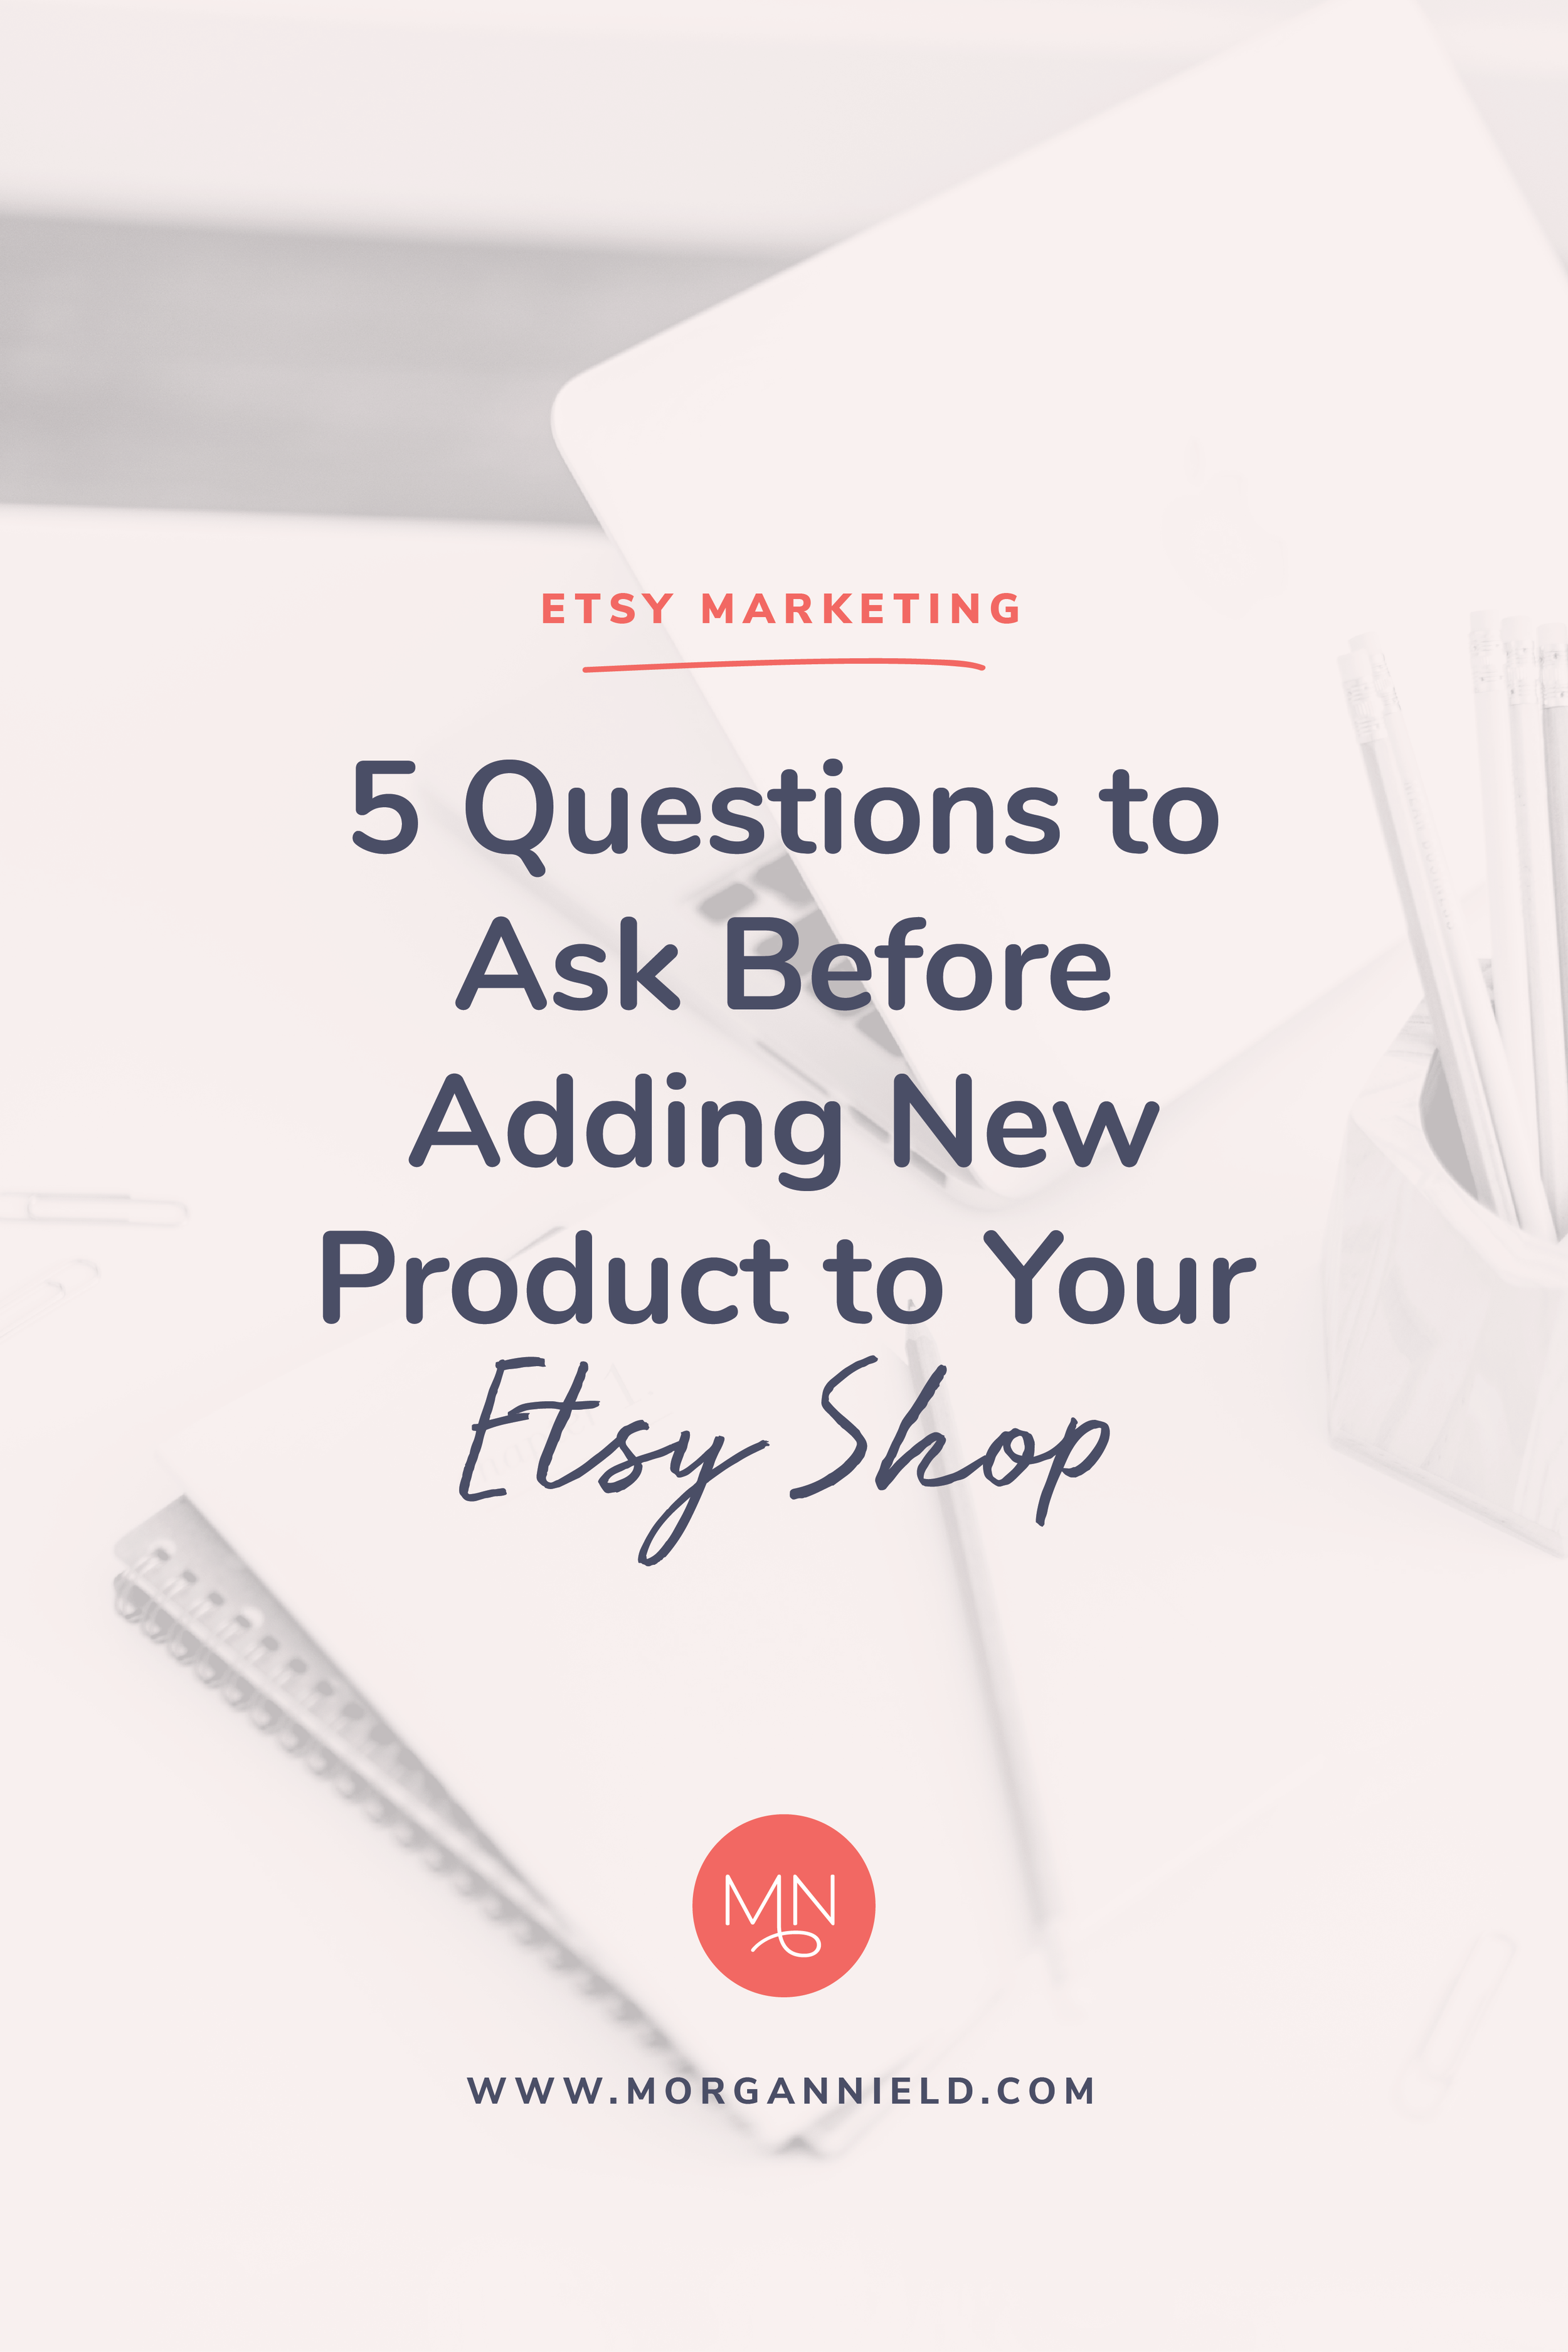 _5BB_5D_5_Questions_to_ask_before_adding_new_product_Etsy-04.png